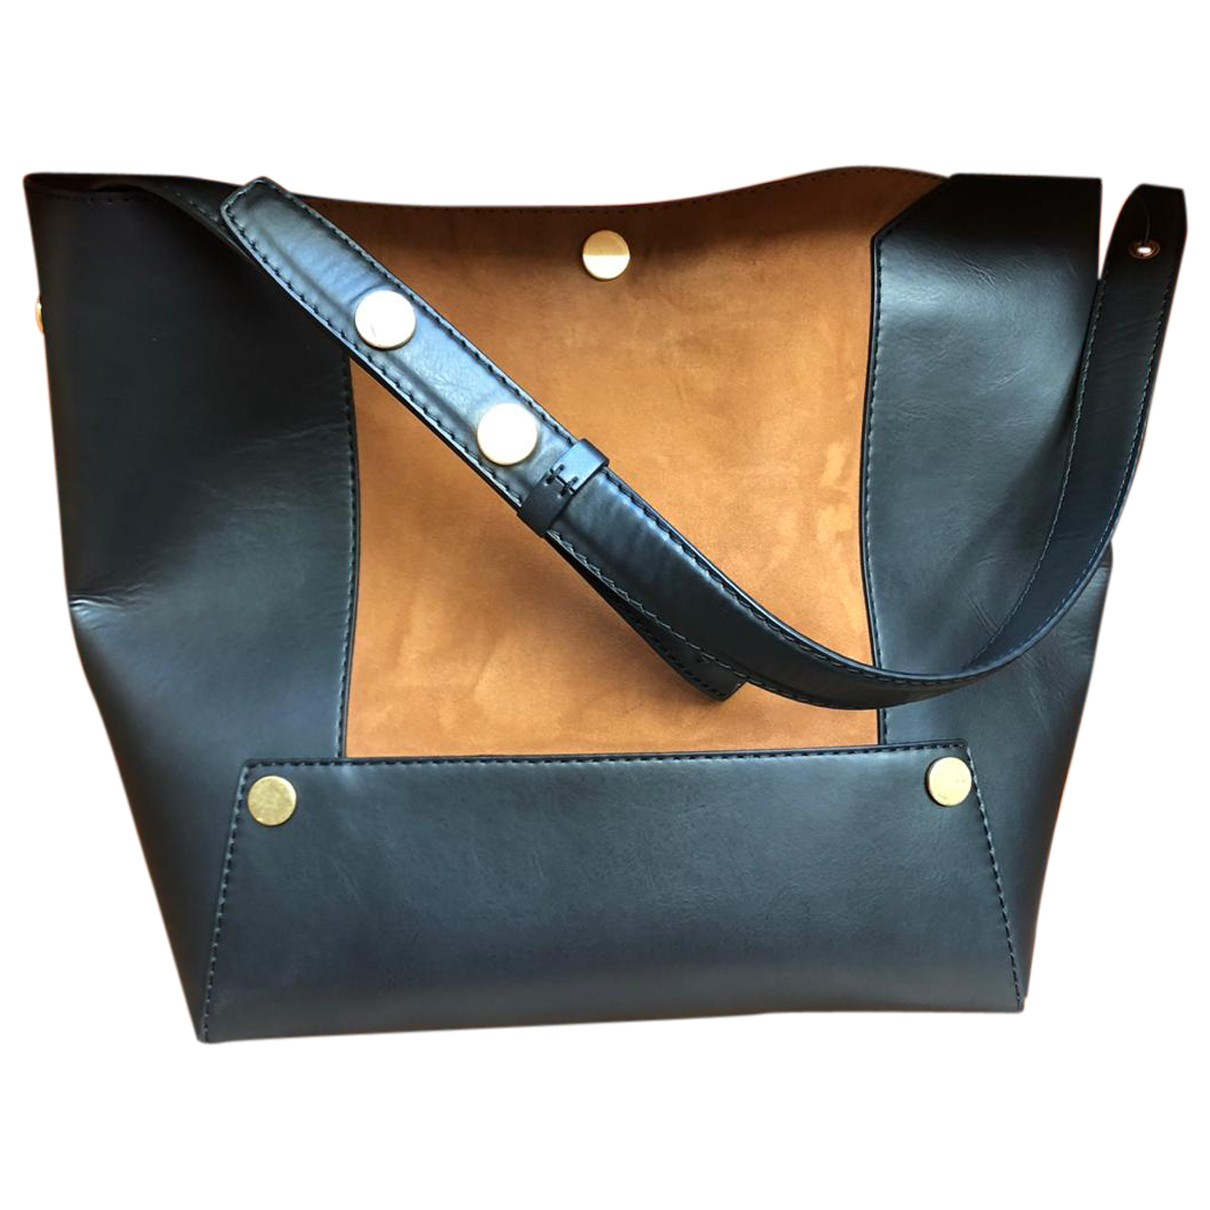 Stella Mccartney \N Handtasche in  Schwarz Synthetik